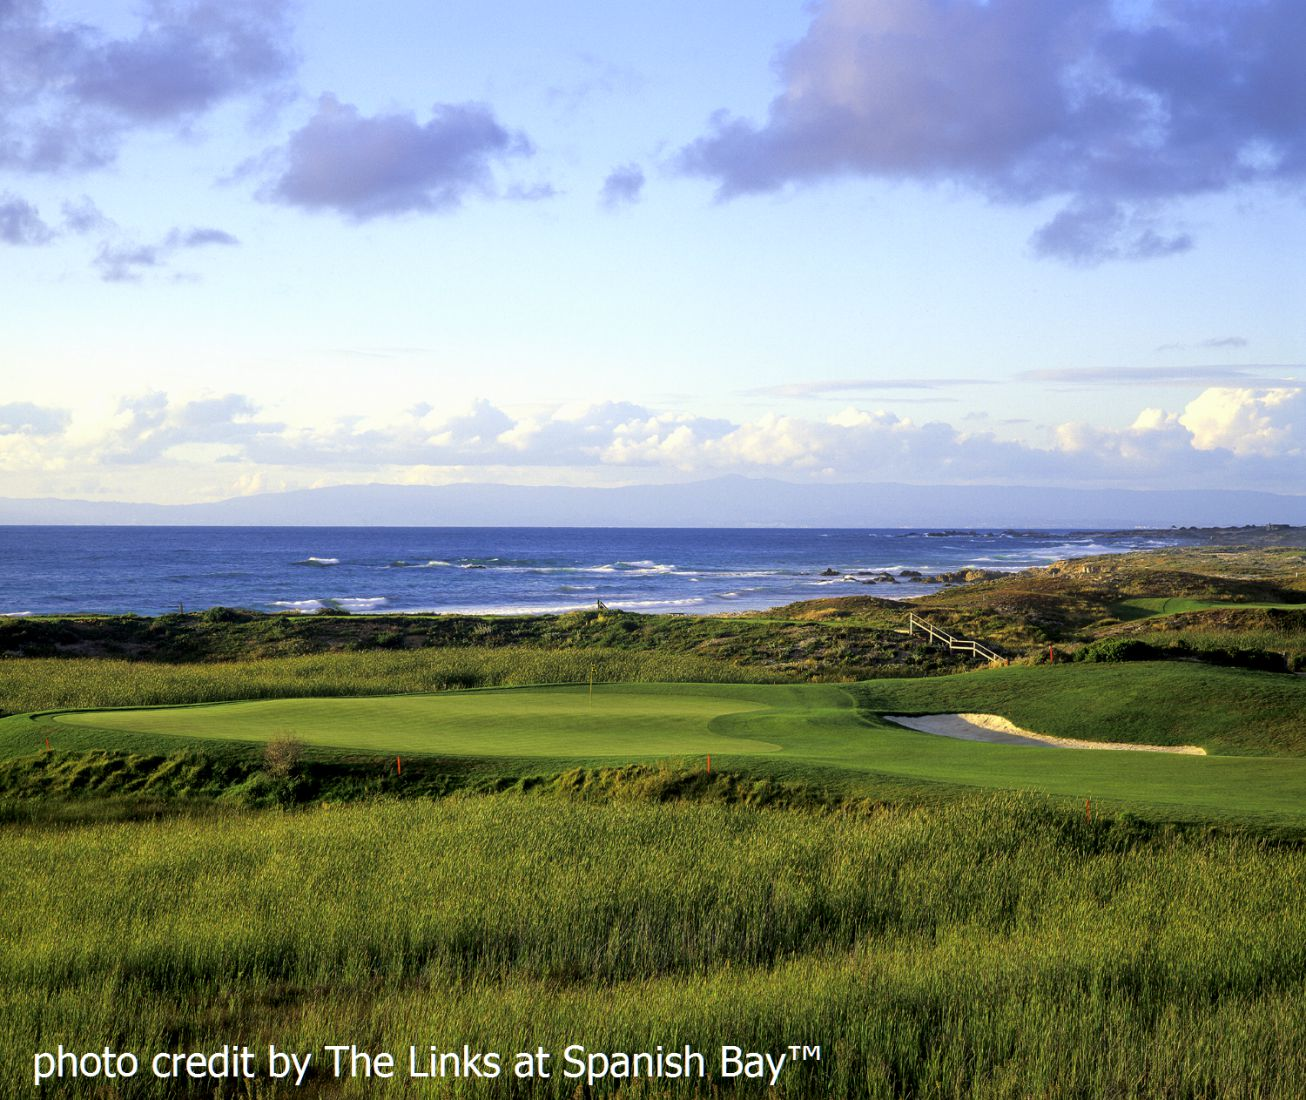 the-links-at-spanish-bay-golf-course-70